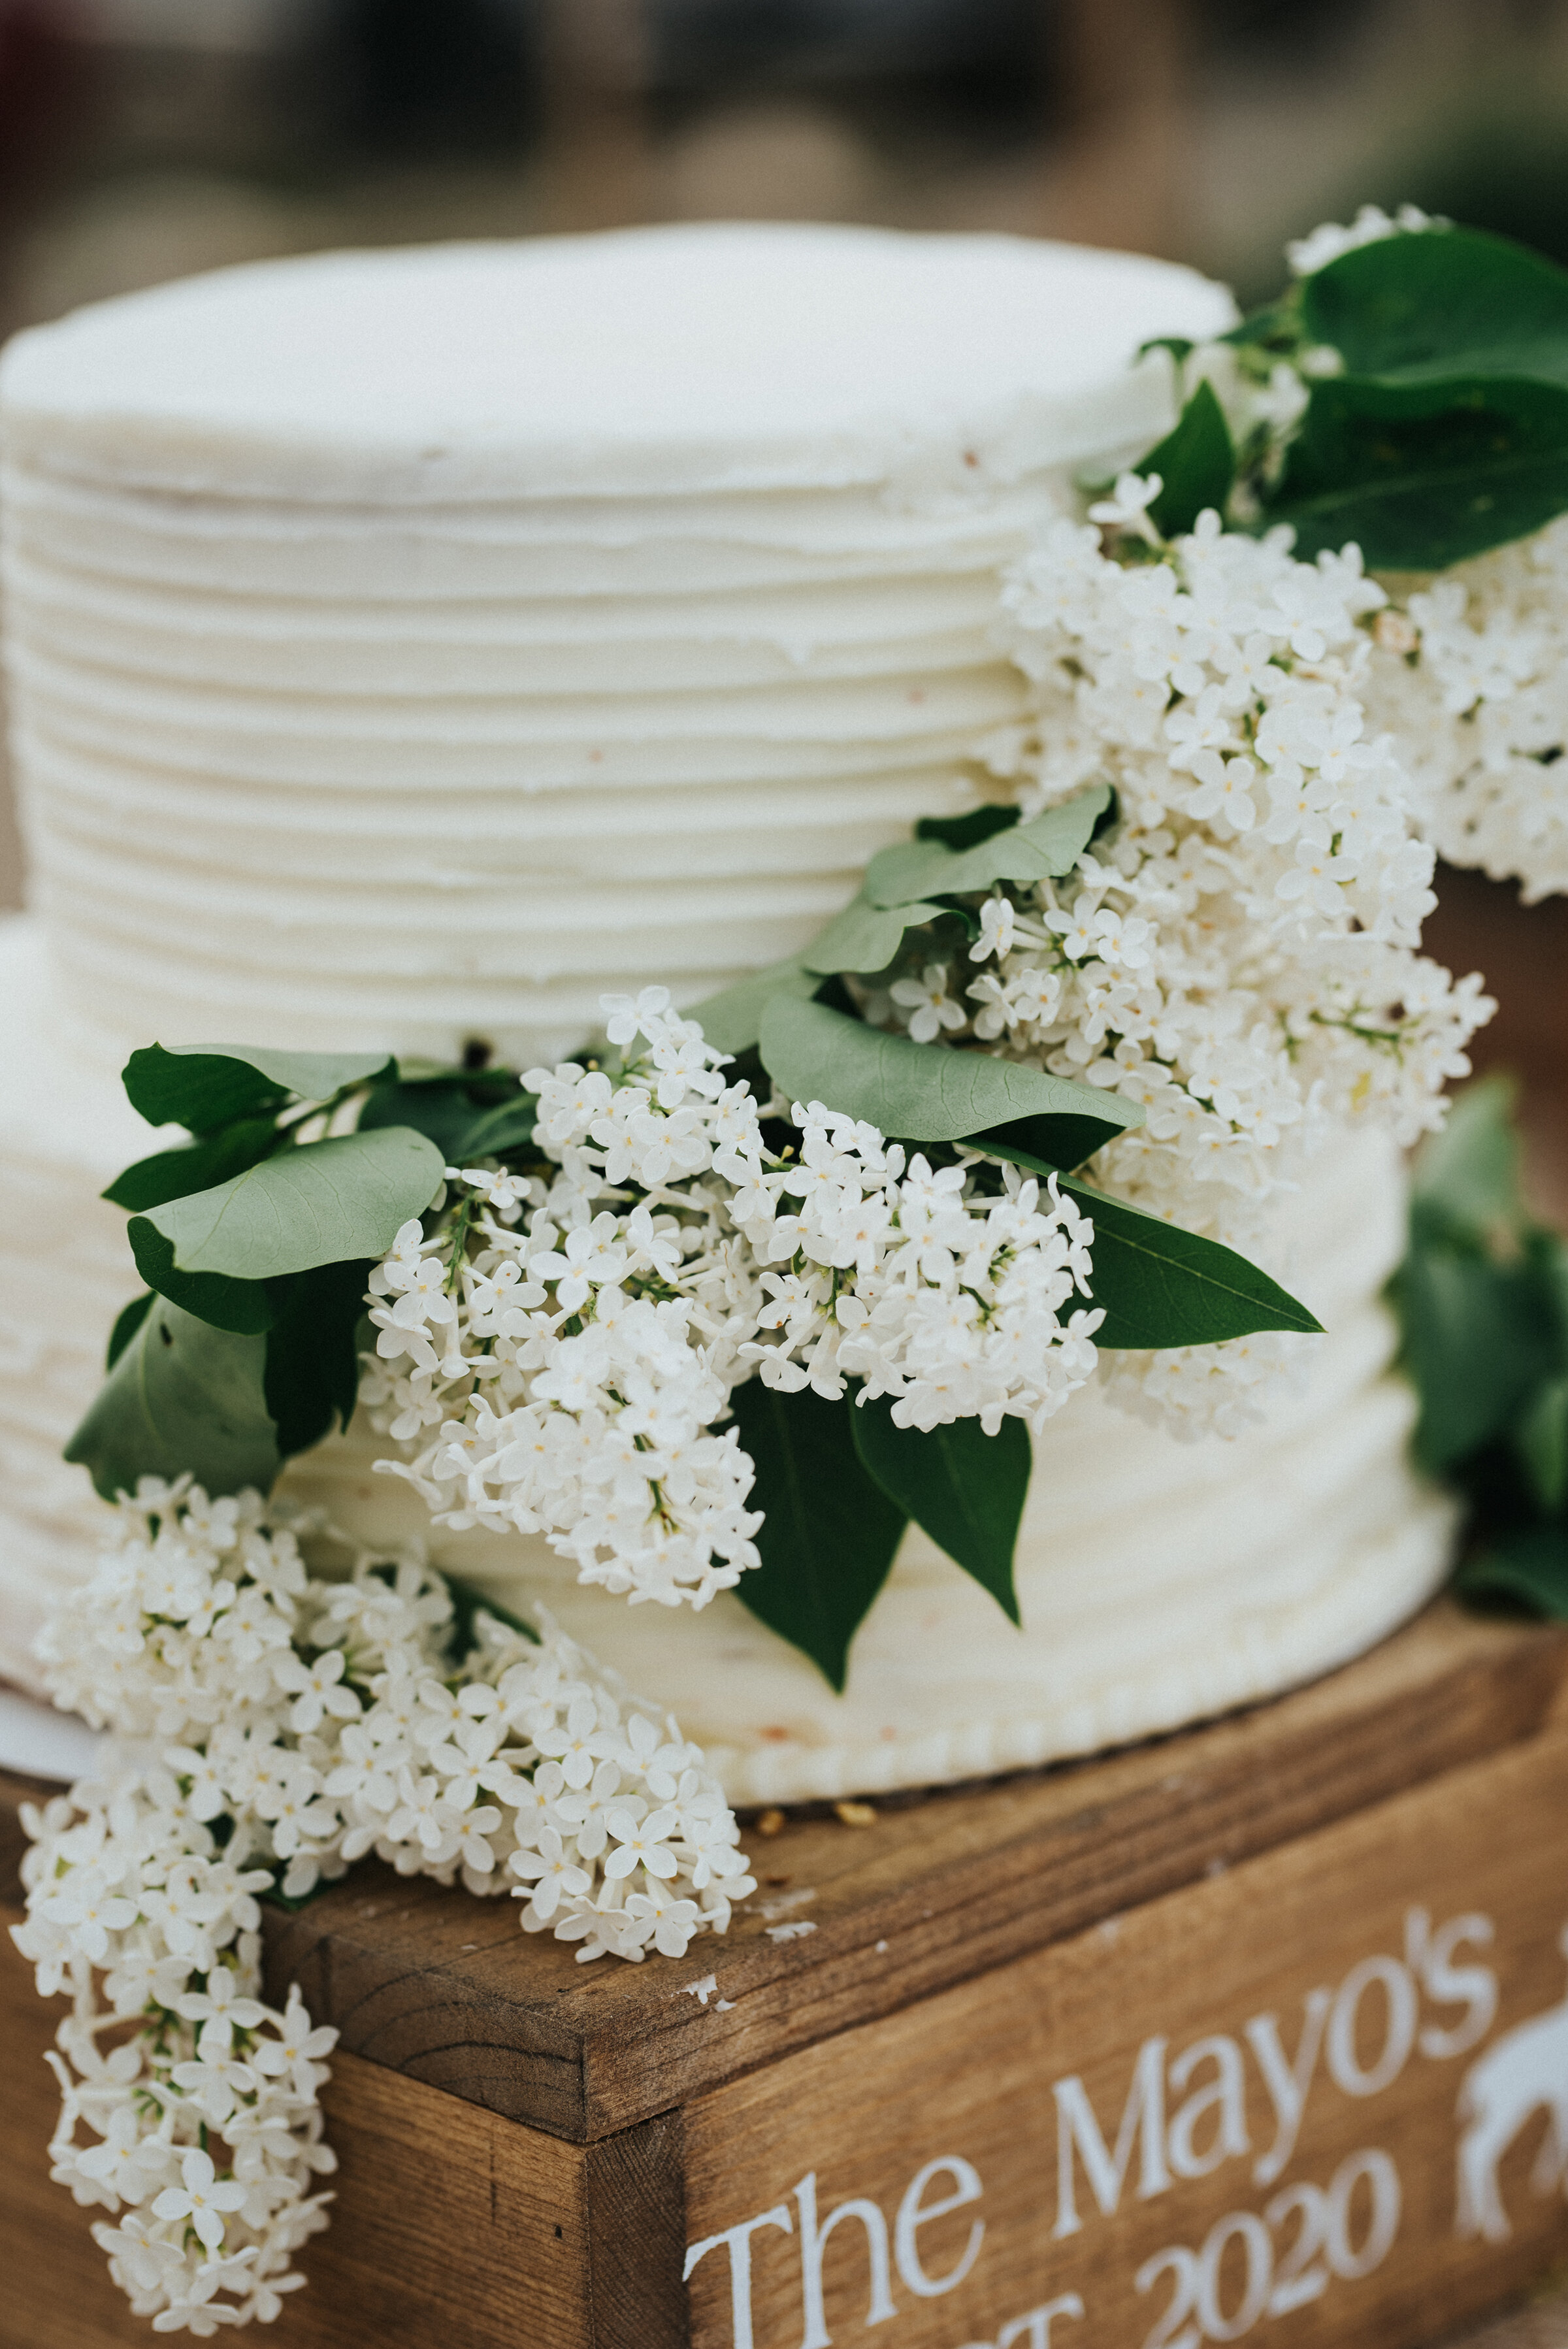 Simple and classic western wedding cake prepared for this bride and groom with white frosting and accented with white flowers and greenery. Wedding day photoshoot in Ephraim Utah photography wedding outdoor location western inspired rustic Airbnb photo aesthetic #ephraimutah #utahphotography #weddingdayphotography #gettingmarried #rusticwedding #utahwedding #westernstyle #weddingphotoshoot